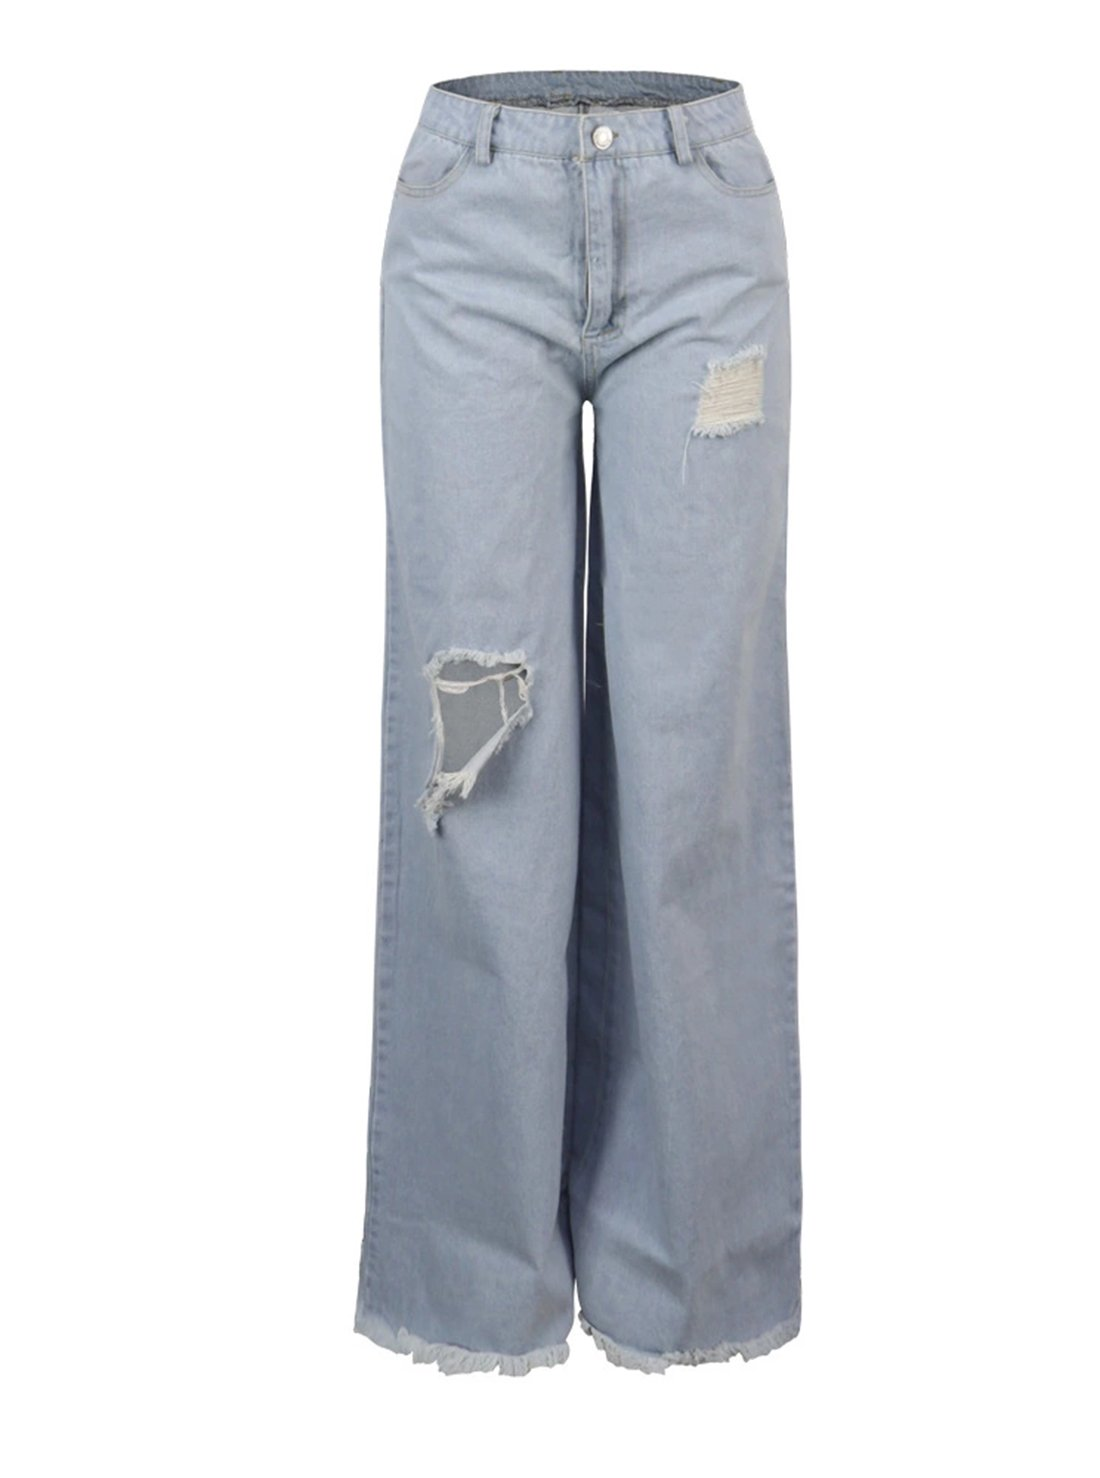 Ankle Length Ladies' Jeans